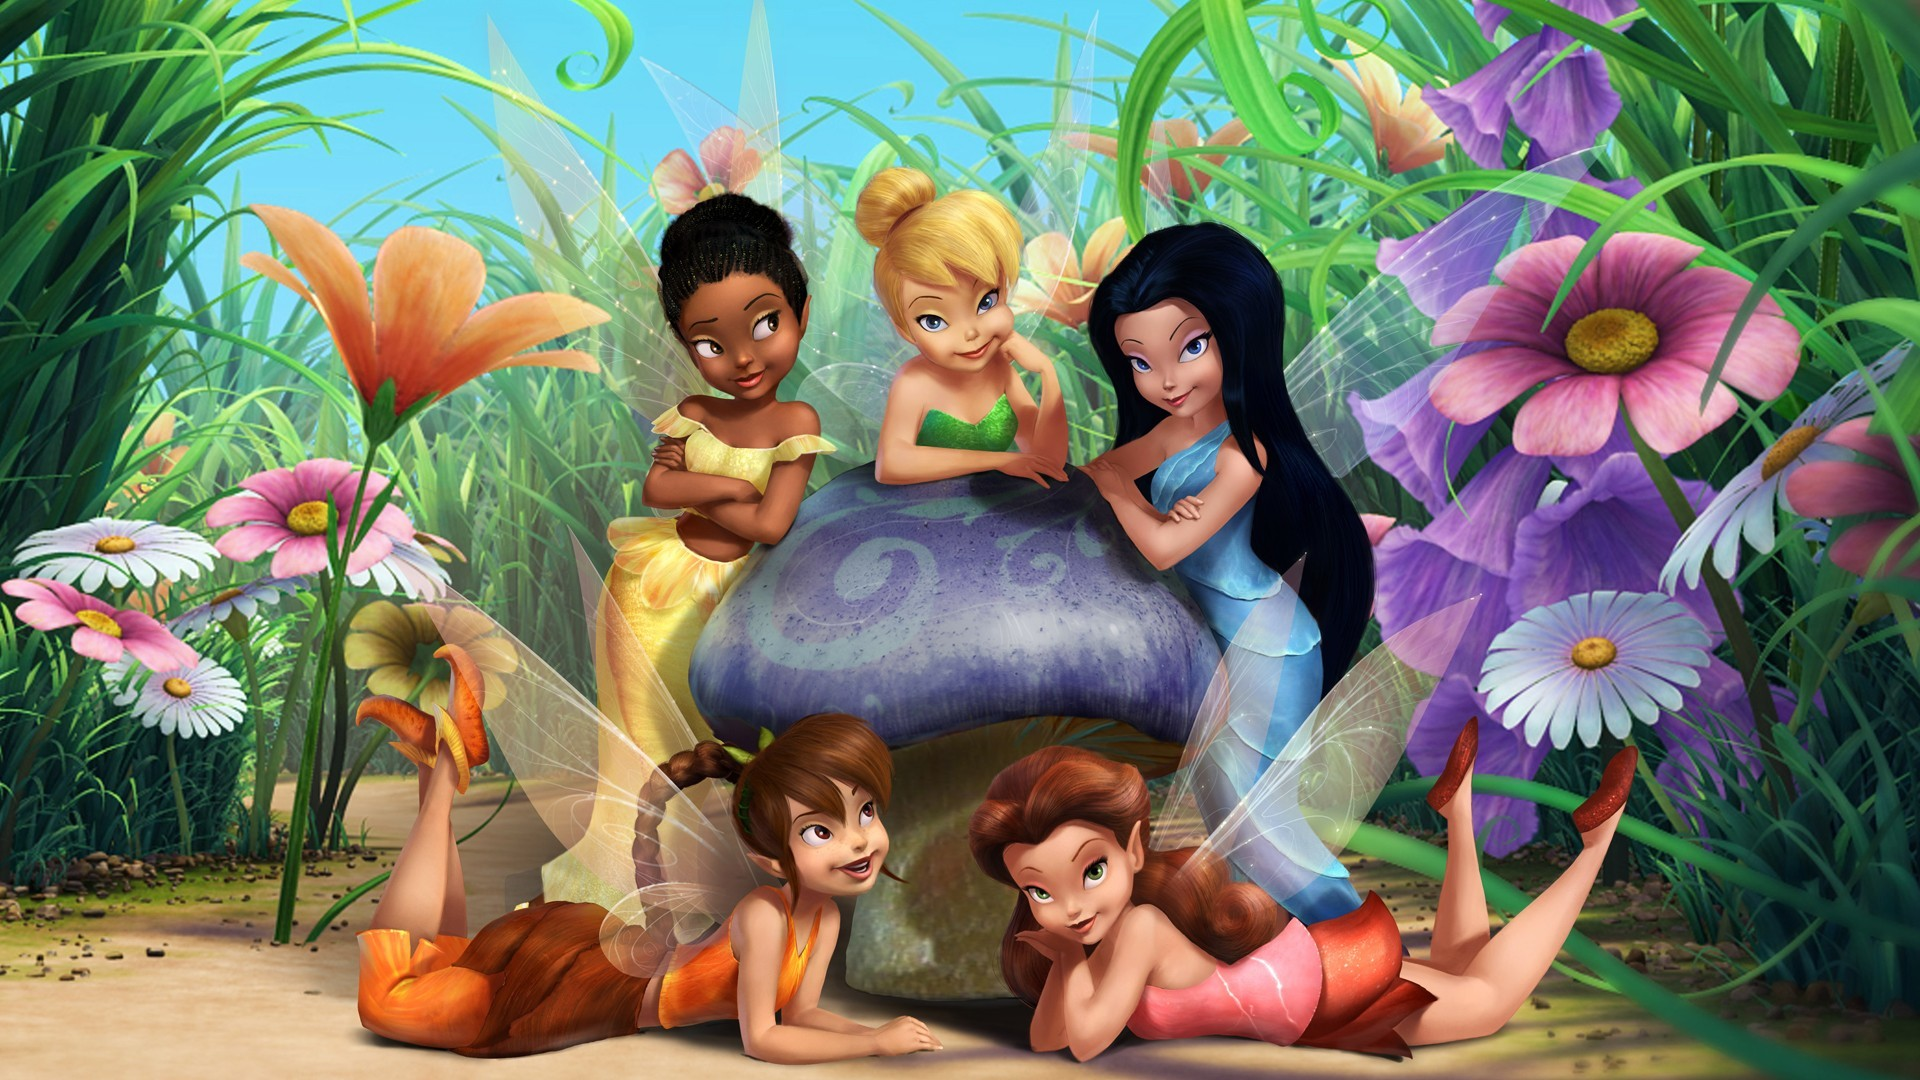 Res: 1920x1080, girl wallpaper animated tinkerbell